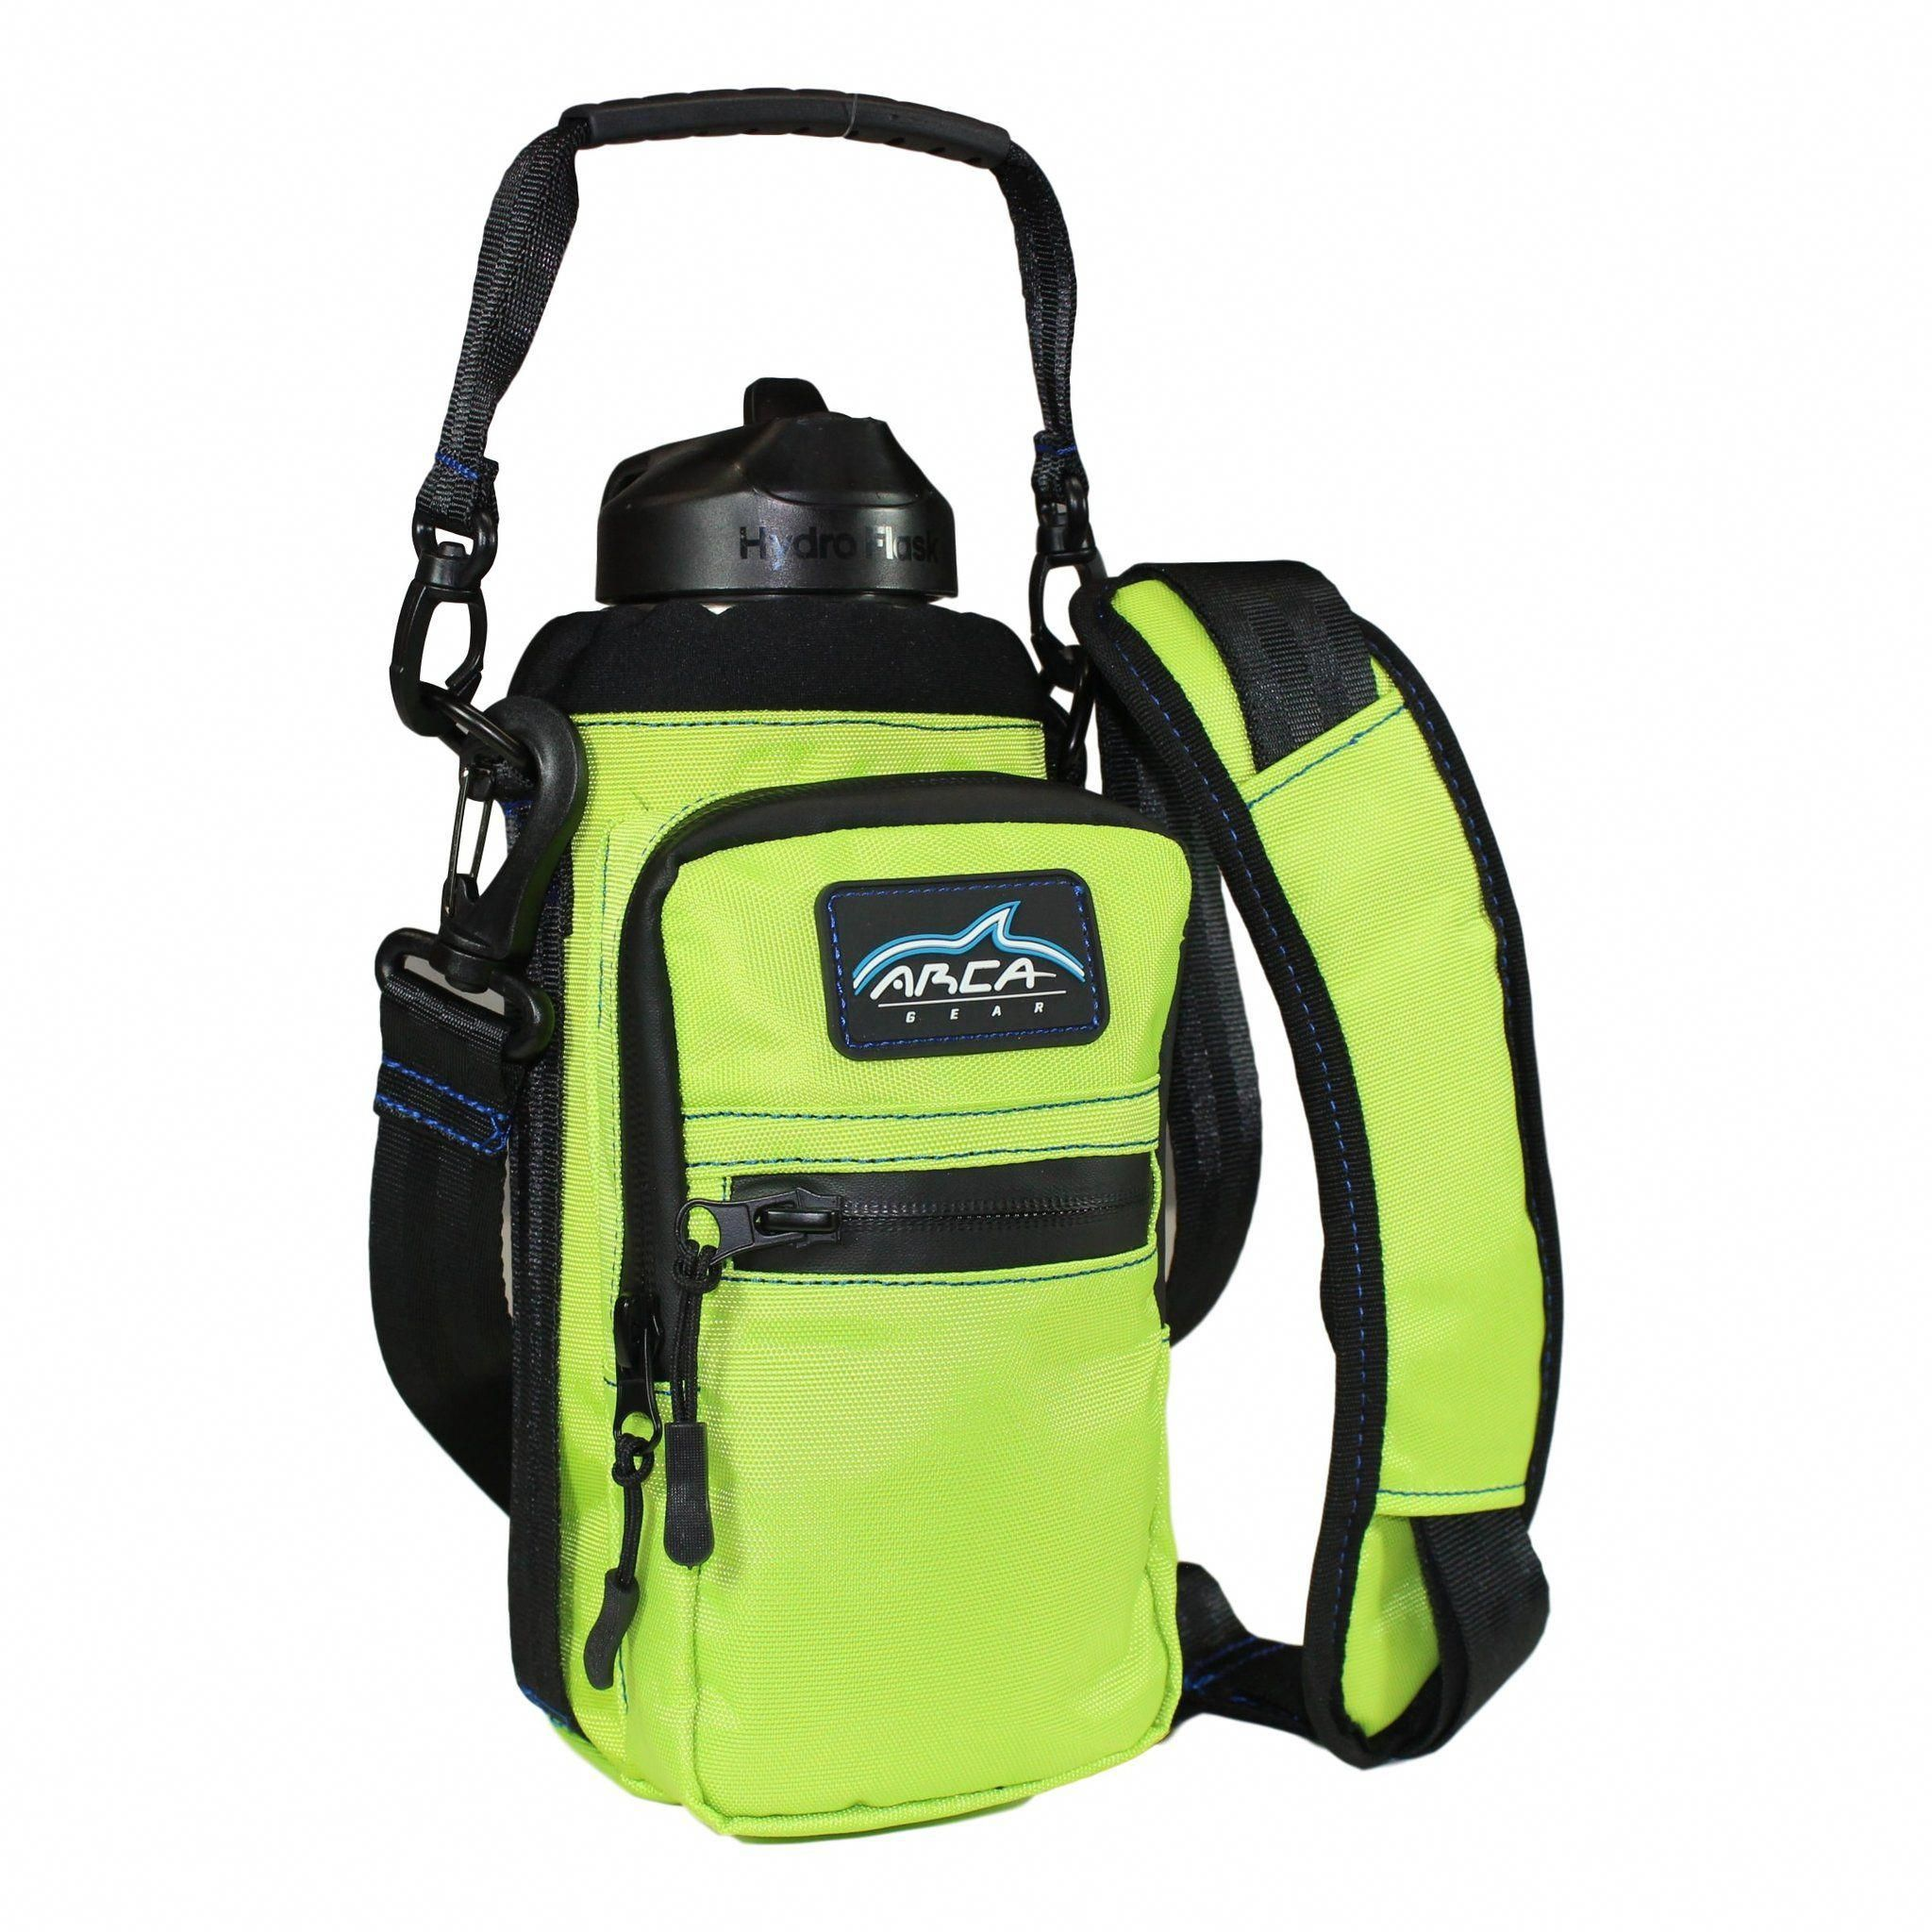 32 oz Water Bottle Carrier with Shoulder Strap and Handle